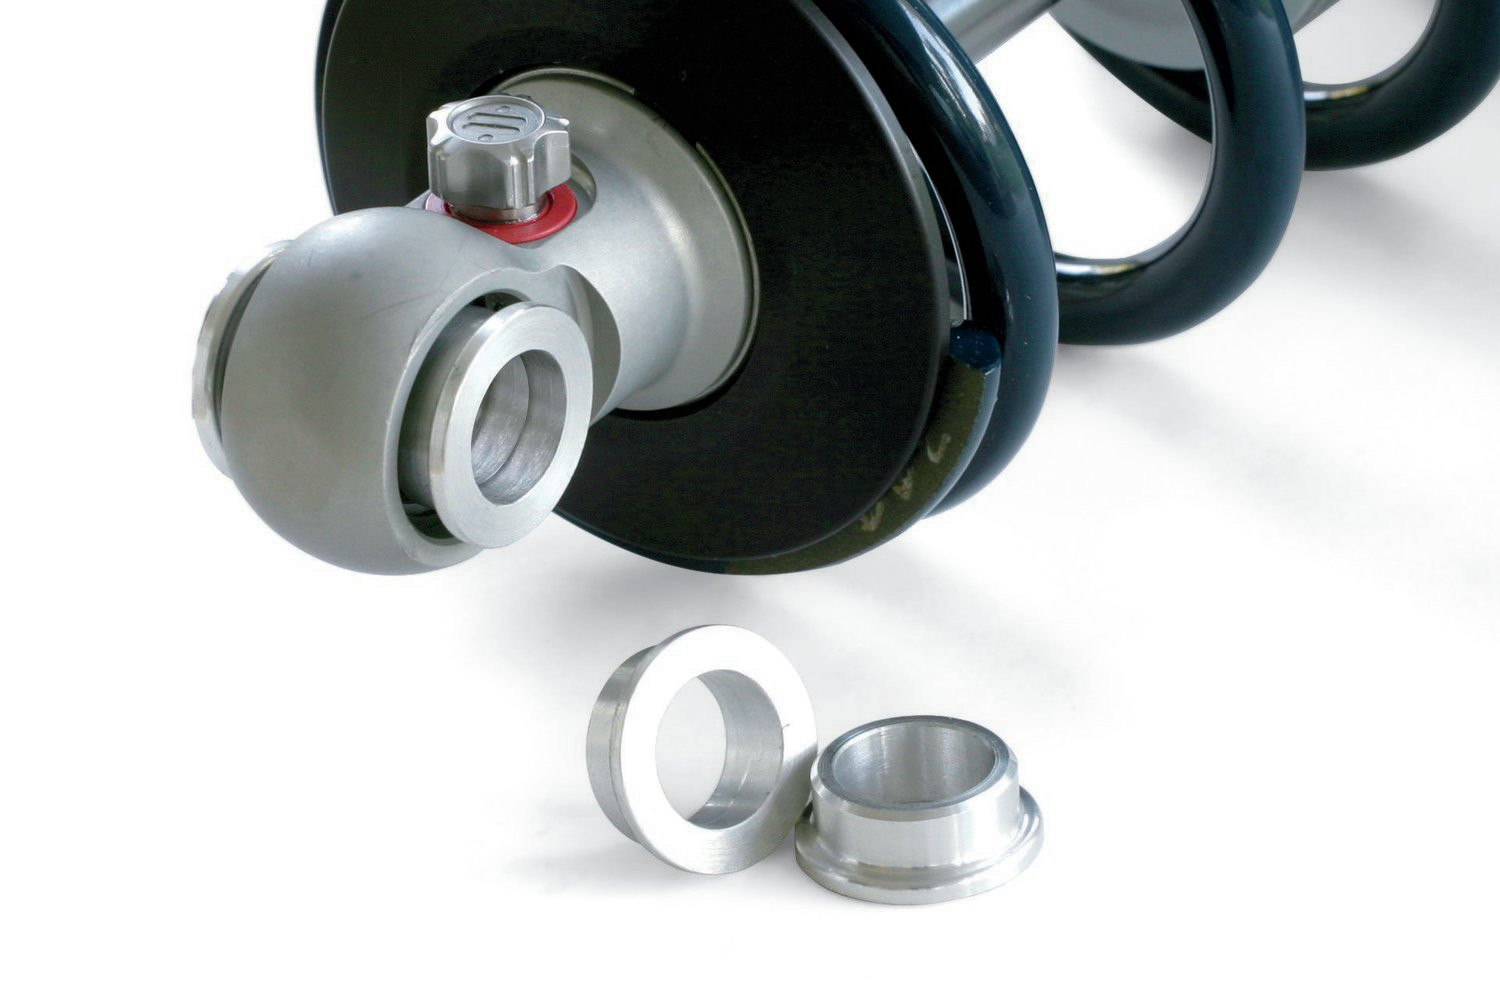 Spacers for the spherical bearings are included to allow the use of either 1/2- or 5/8-inch mounting hardware.